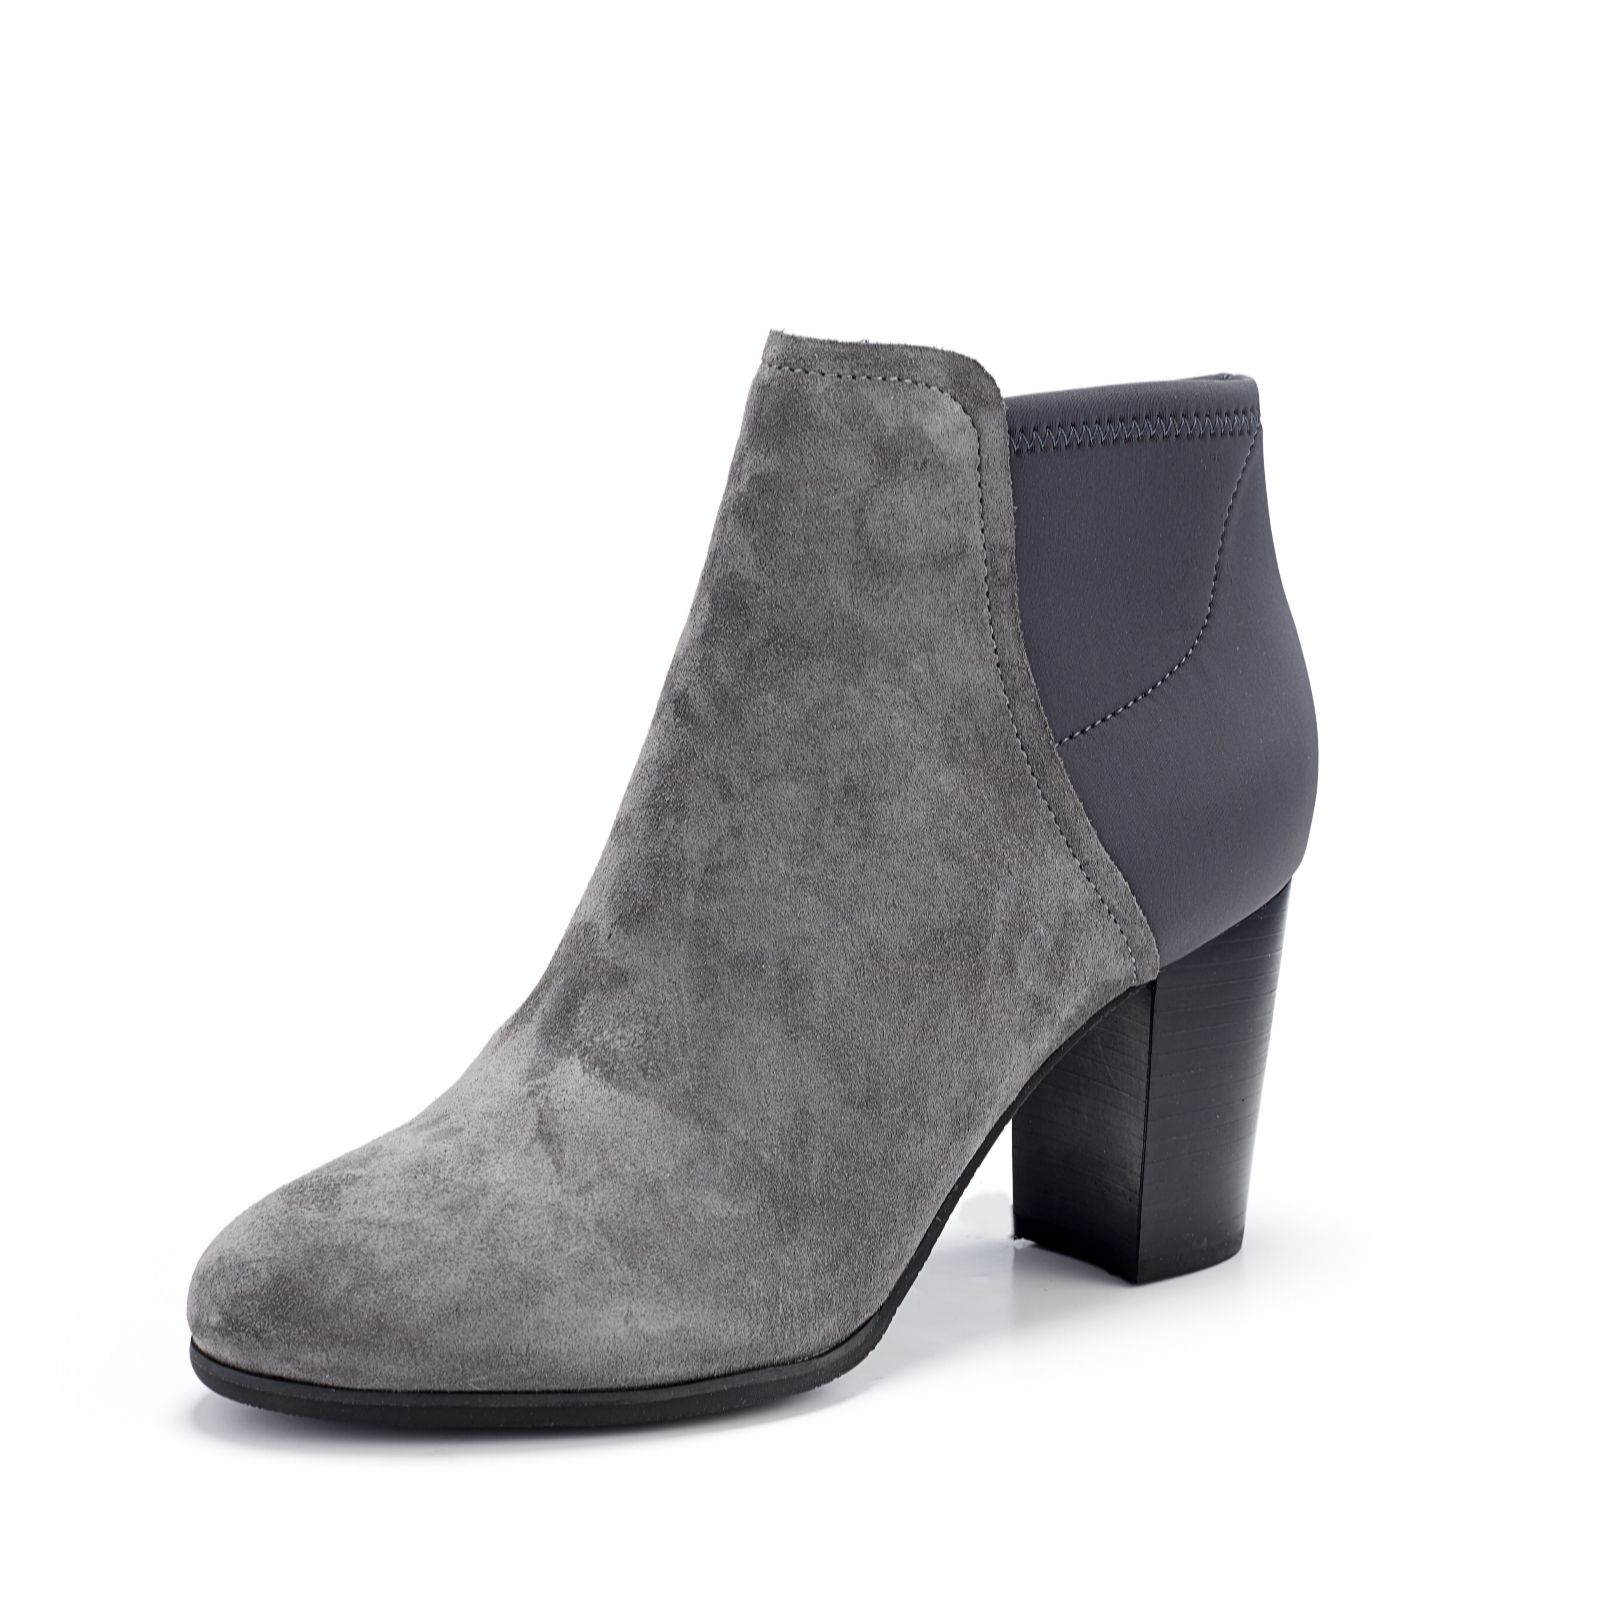 0cea66a08ee Vionic Orthotic Perk Whitney Mixed Fabric Ankle Boot w/ FMT Technology -  QVC UK